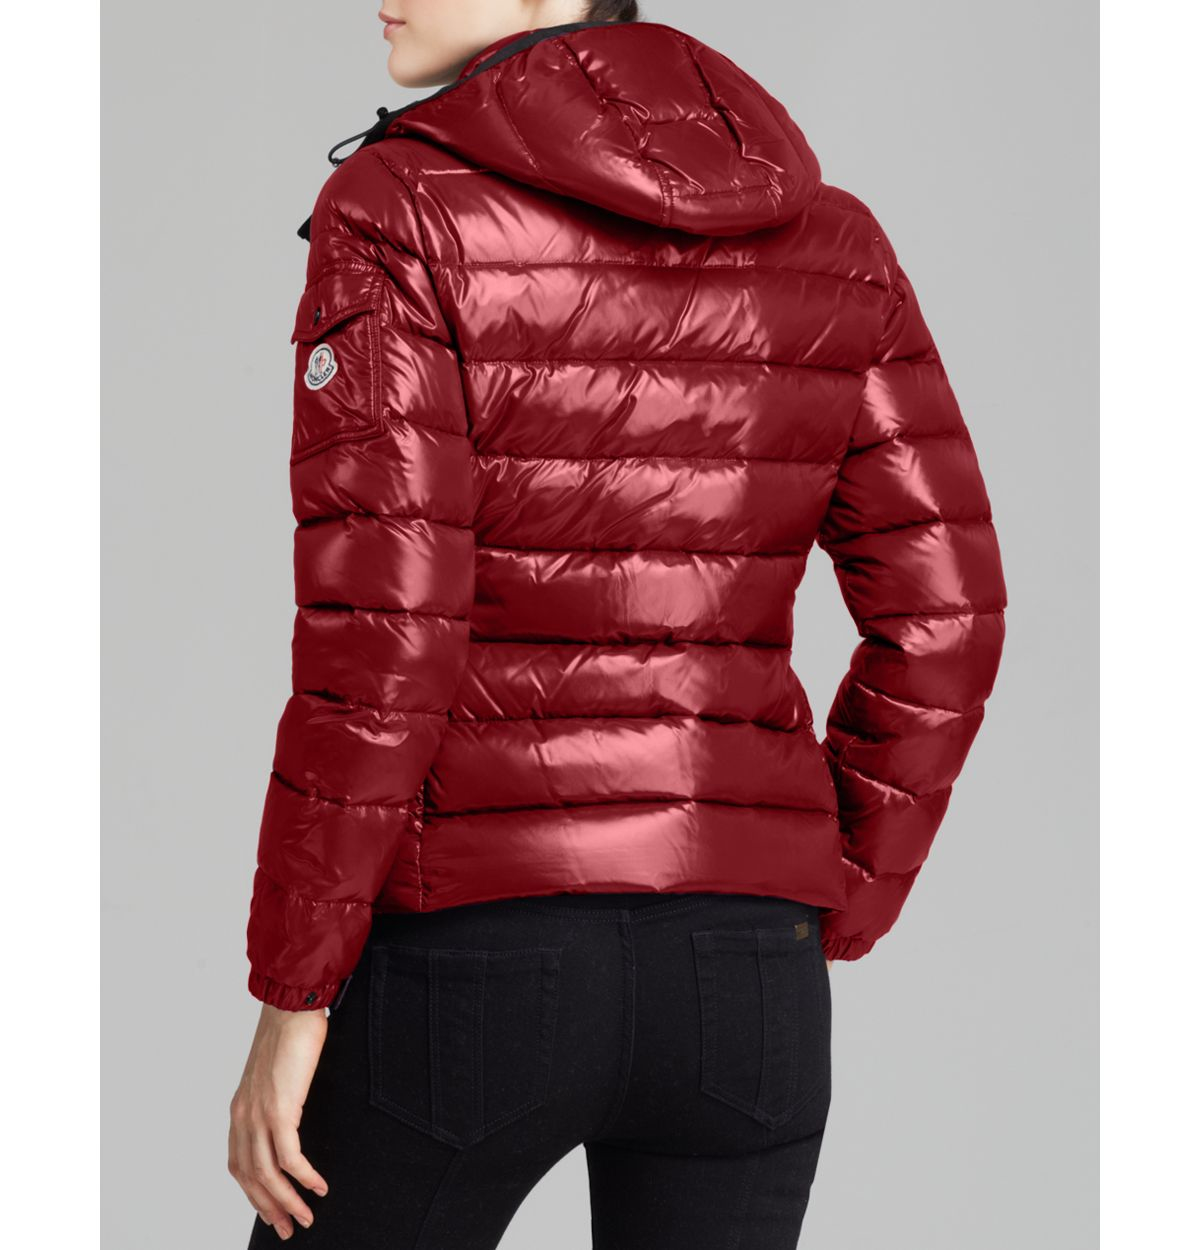 a45669a60f93 Lyst - Moncler Bady Lacquer Hooded Short Down Coat in Red